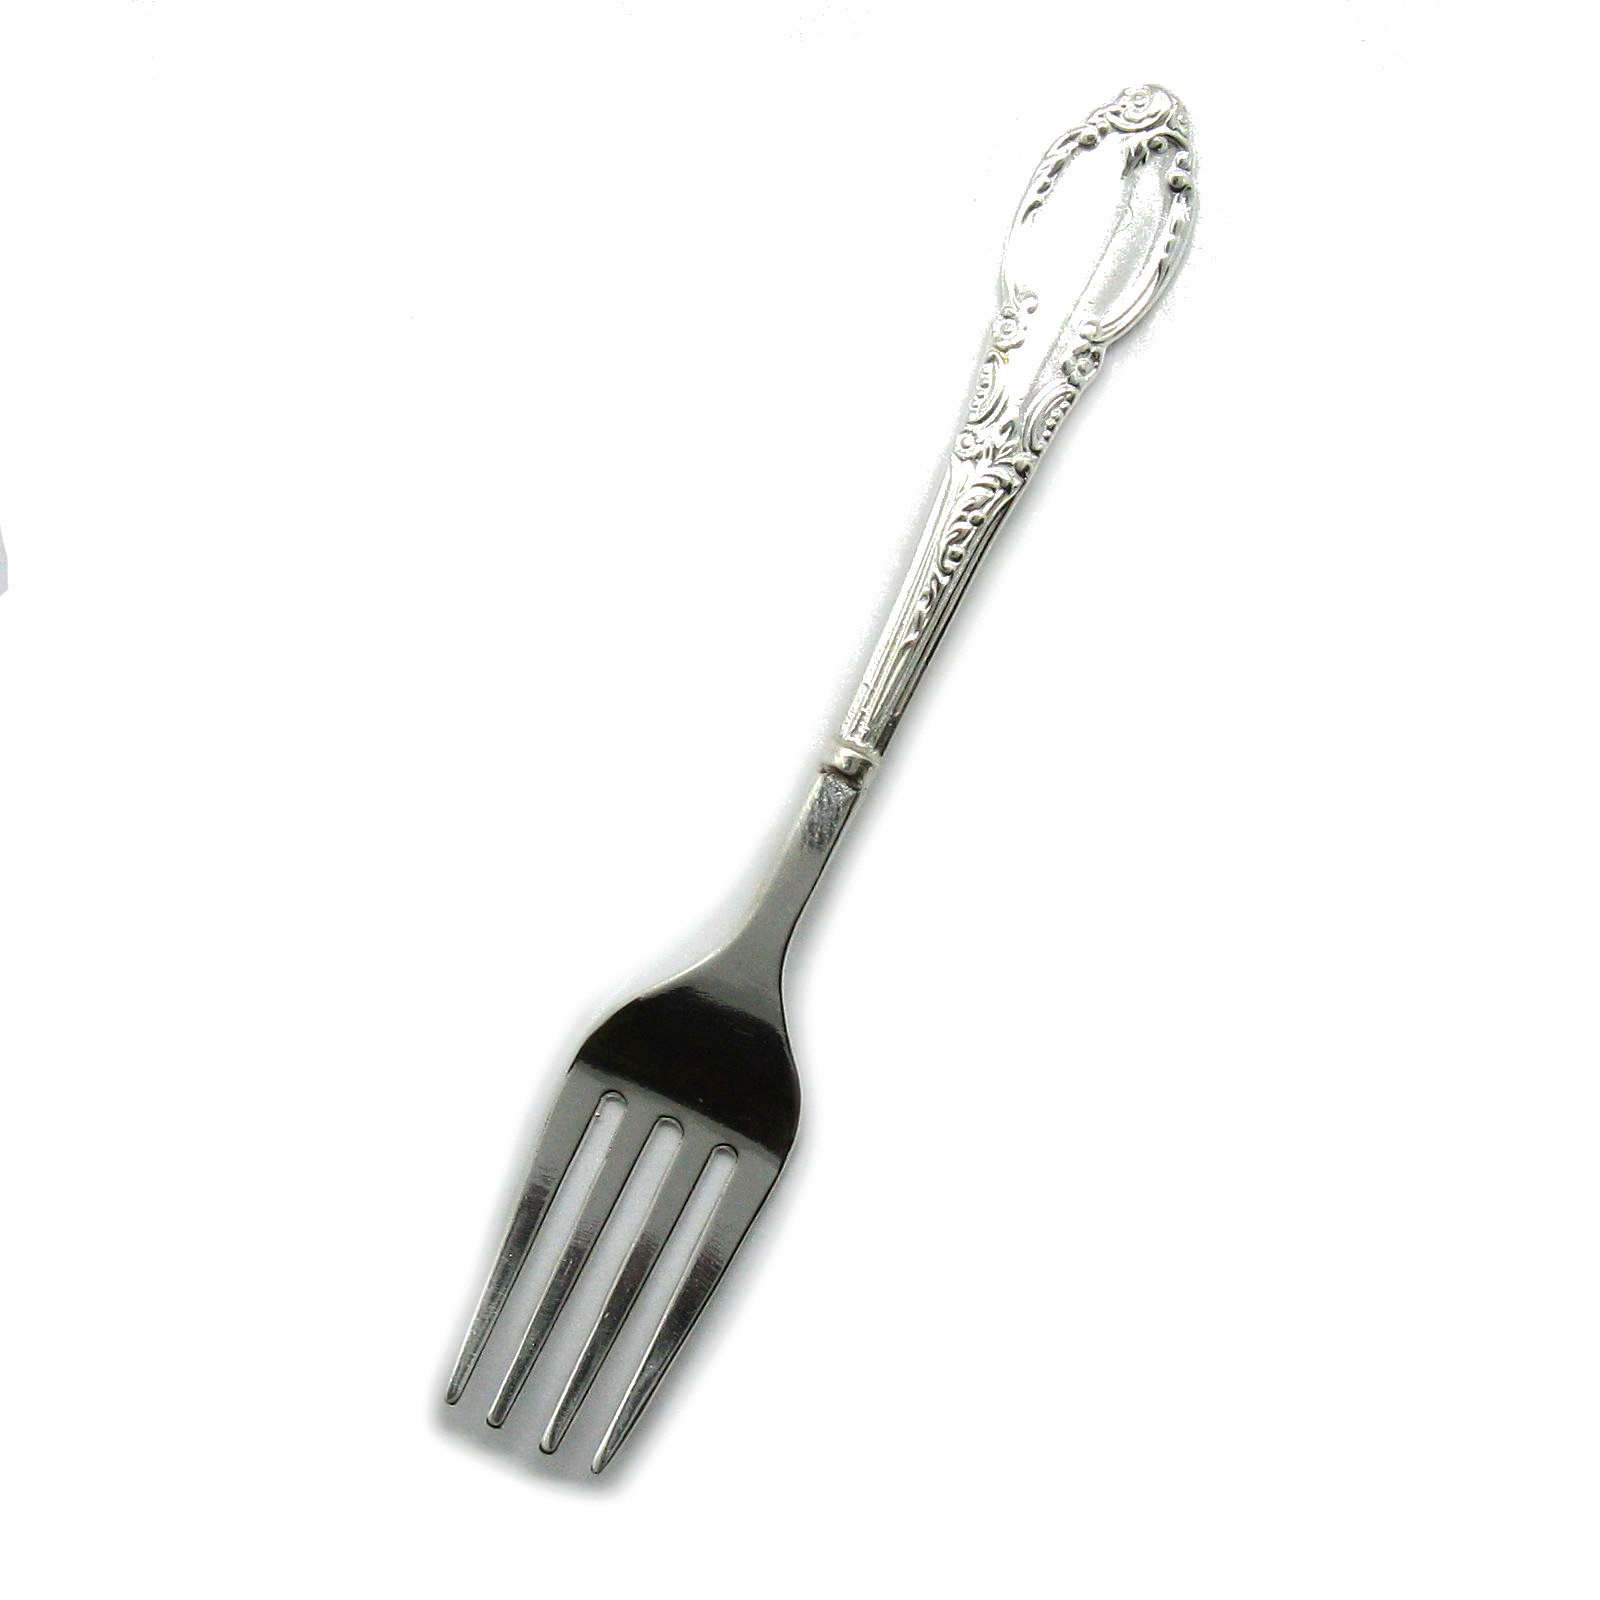 Silver fork - S000011